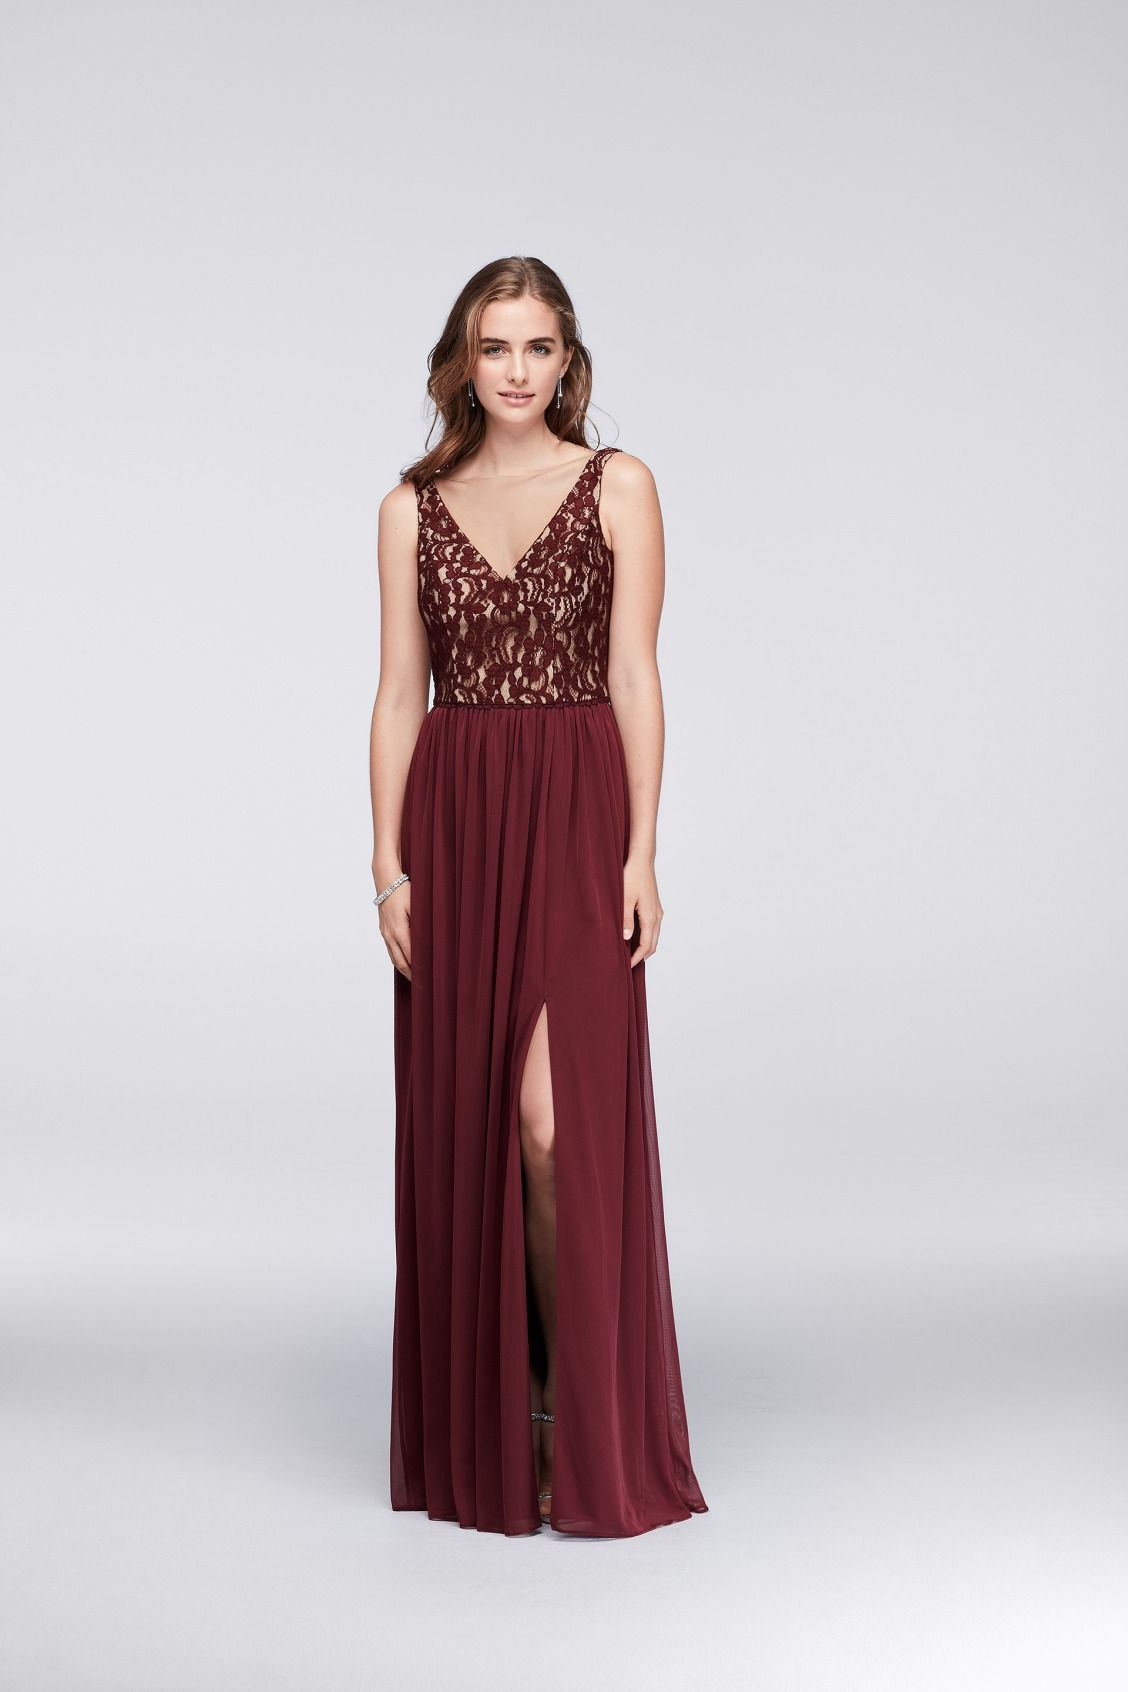 Lace And Wine A Winning Combination Shop This Tank V Neck Lace And